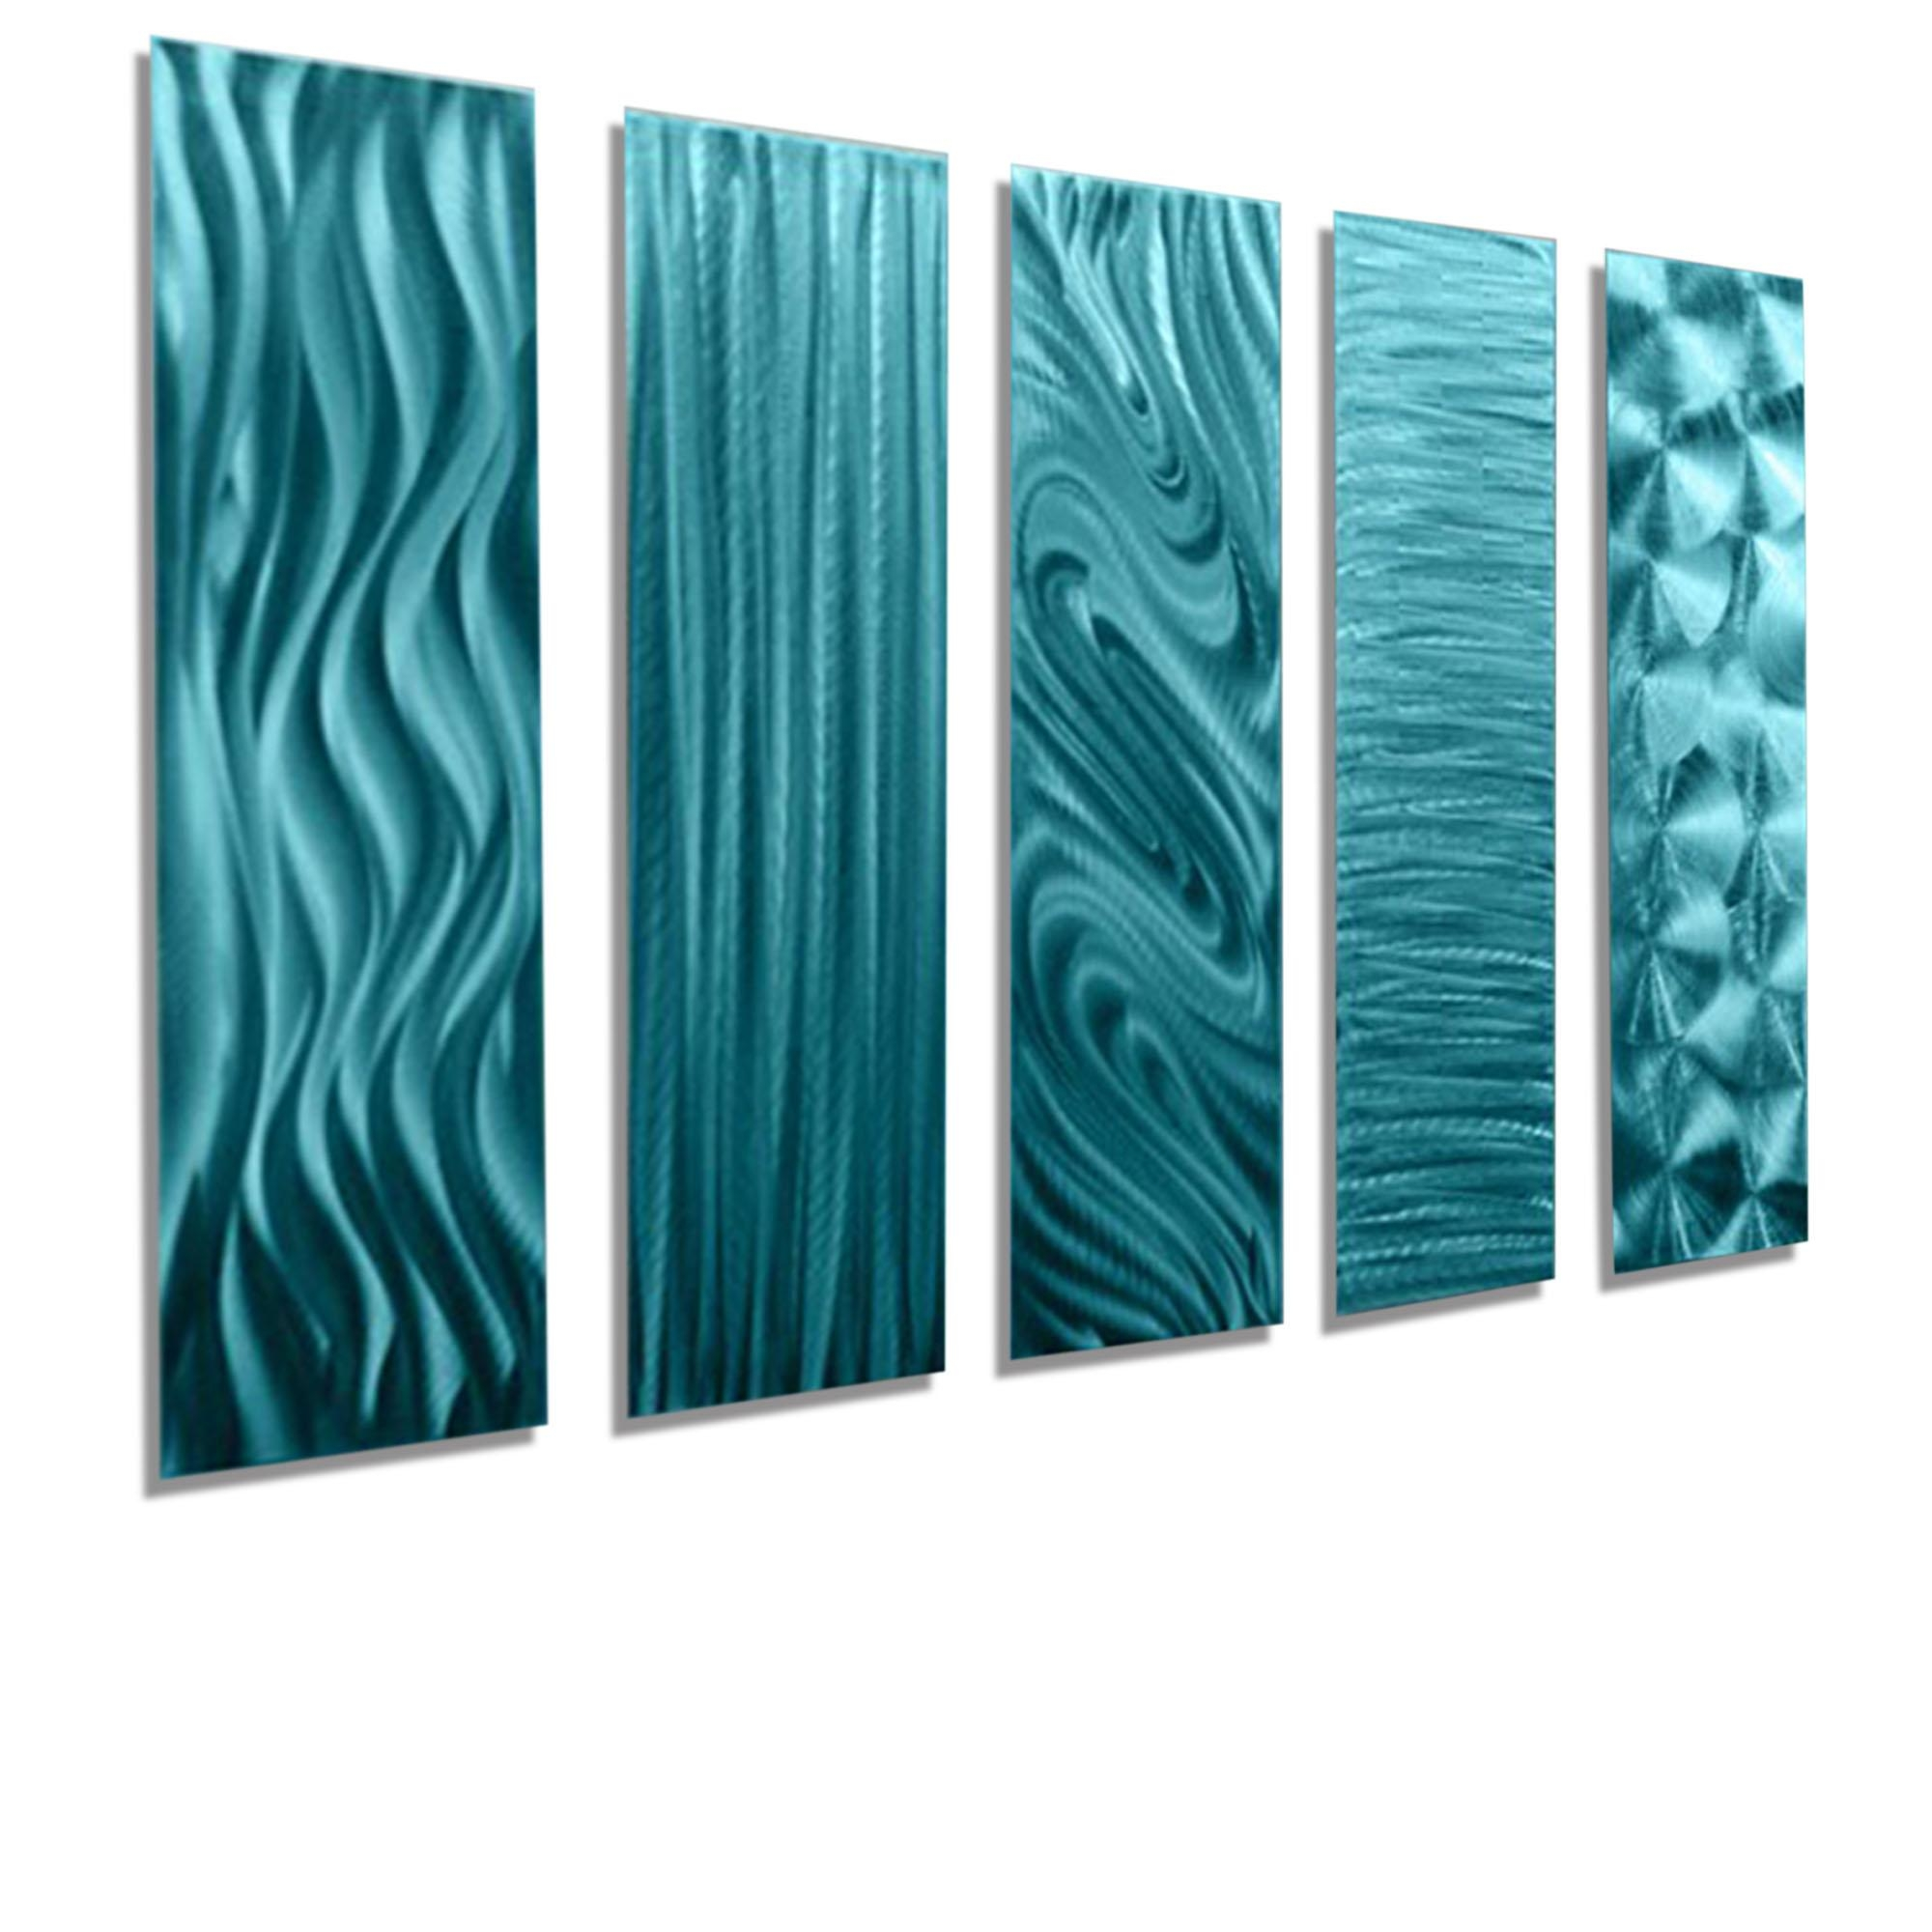 """5 Easy Pieces Aqua - Set Of Five 24"""" X 6"""" Metal Wall Art Accents intended for Turquoise Metal Wall Art"""